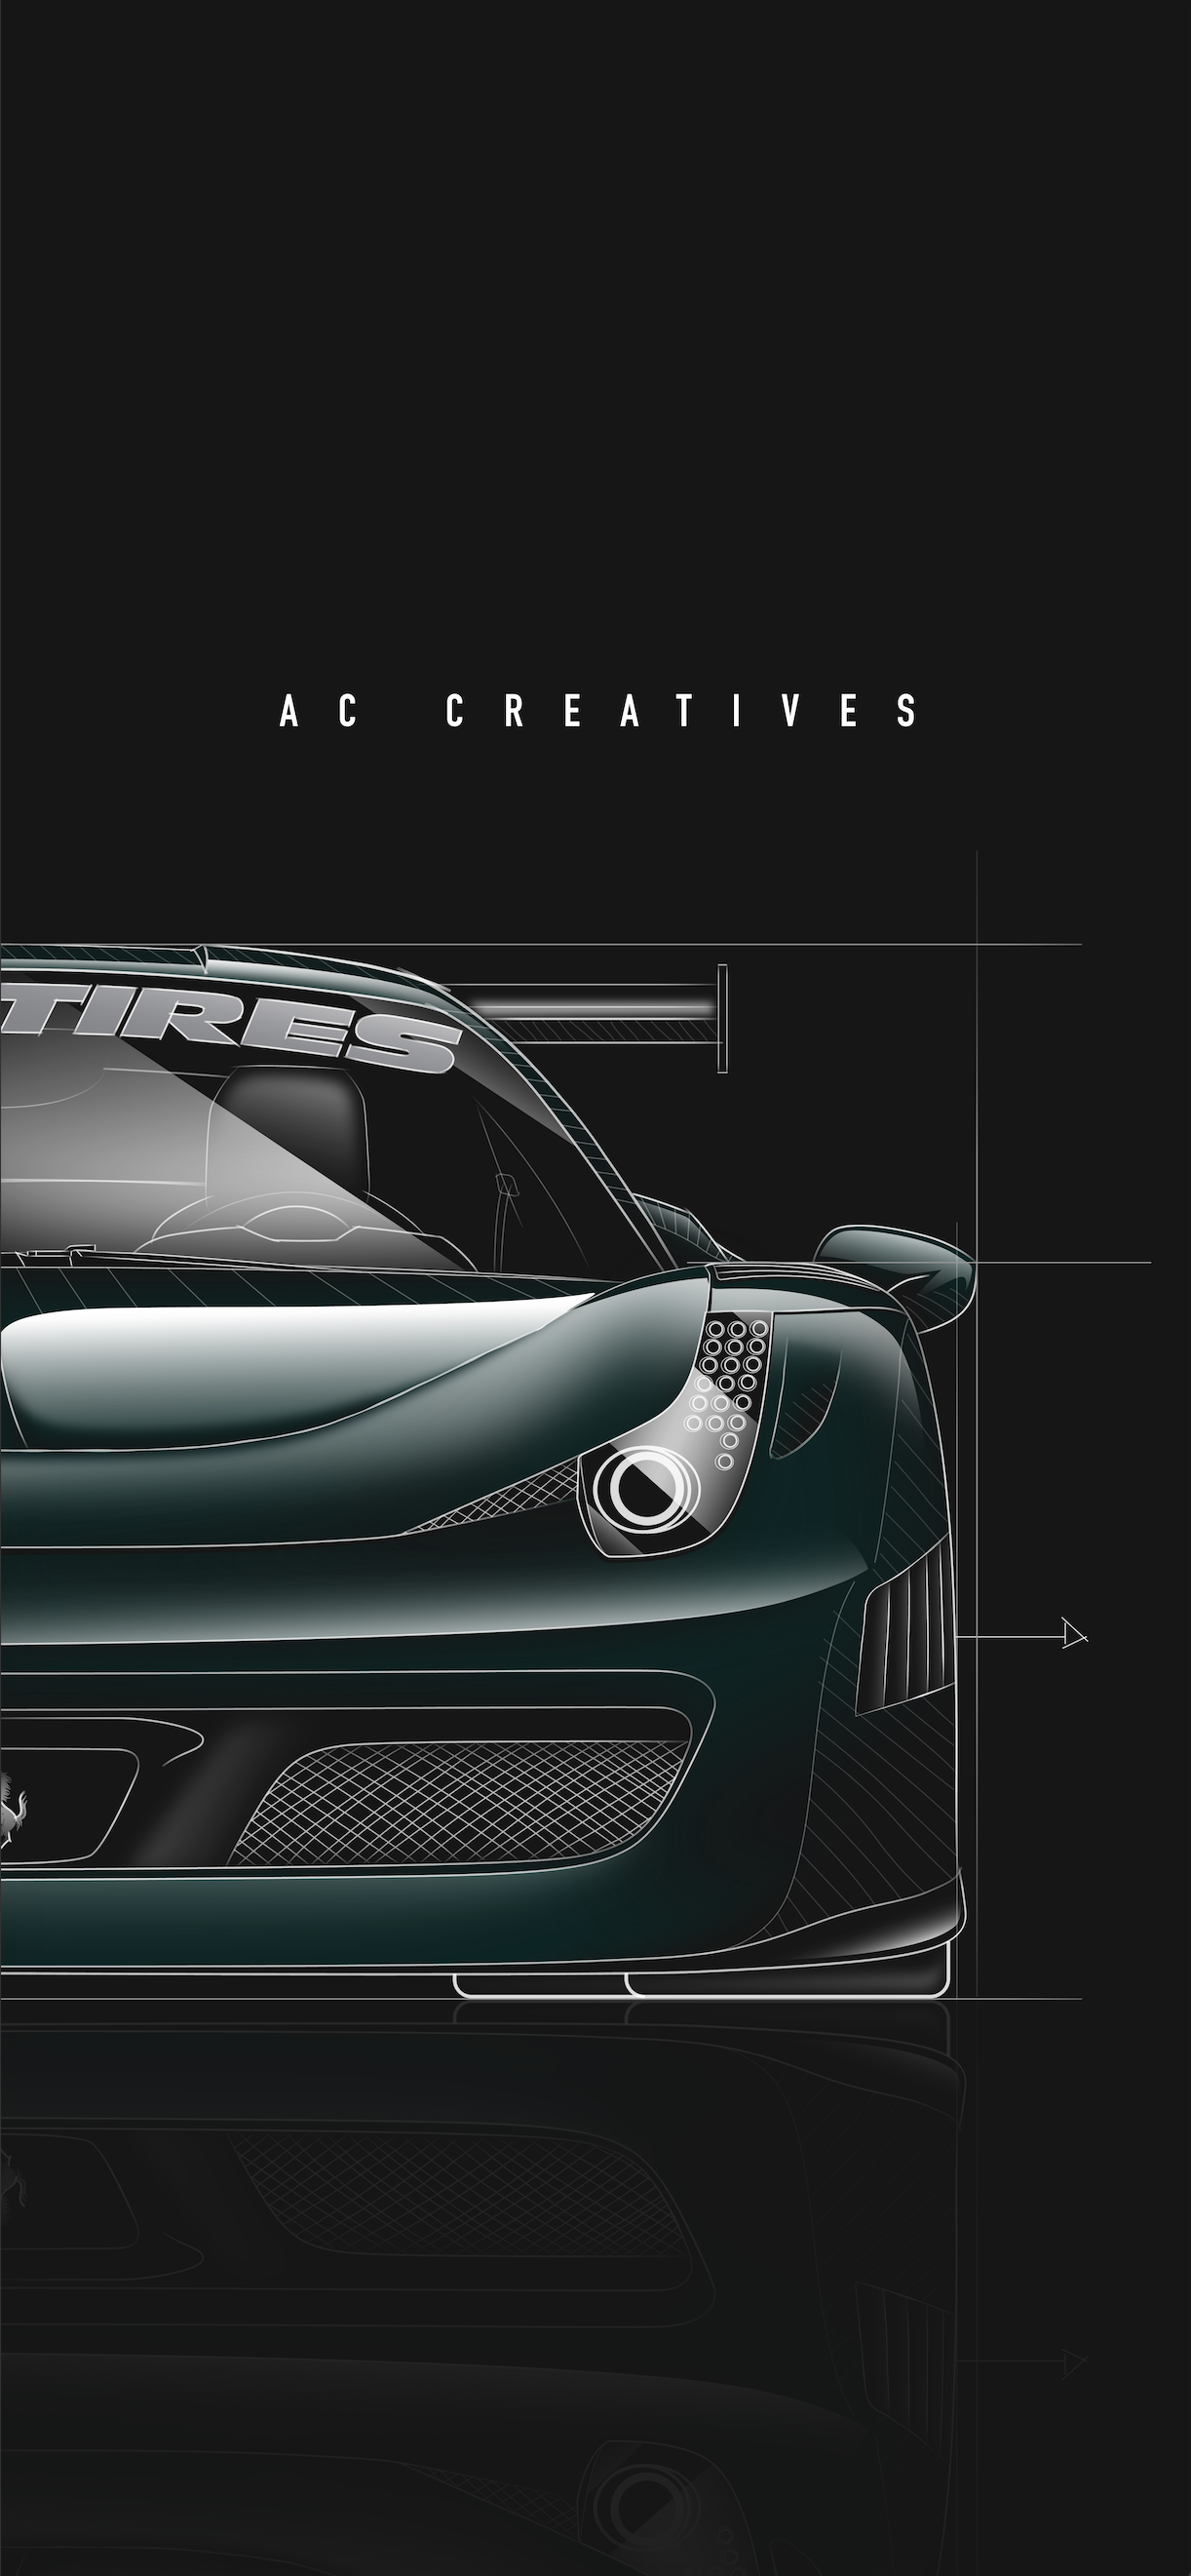 Tj Hunt Ferrari Wallpaper Ac Creatives Graphic Design Illustration